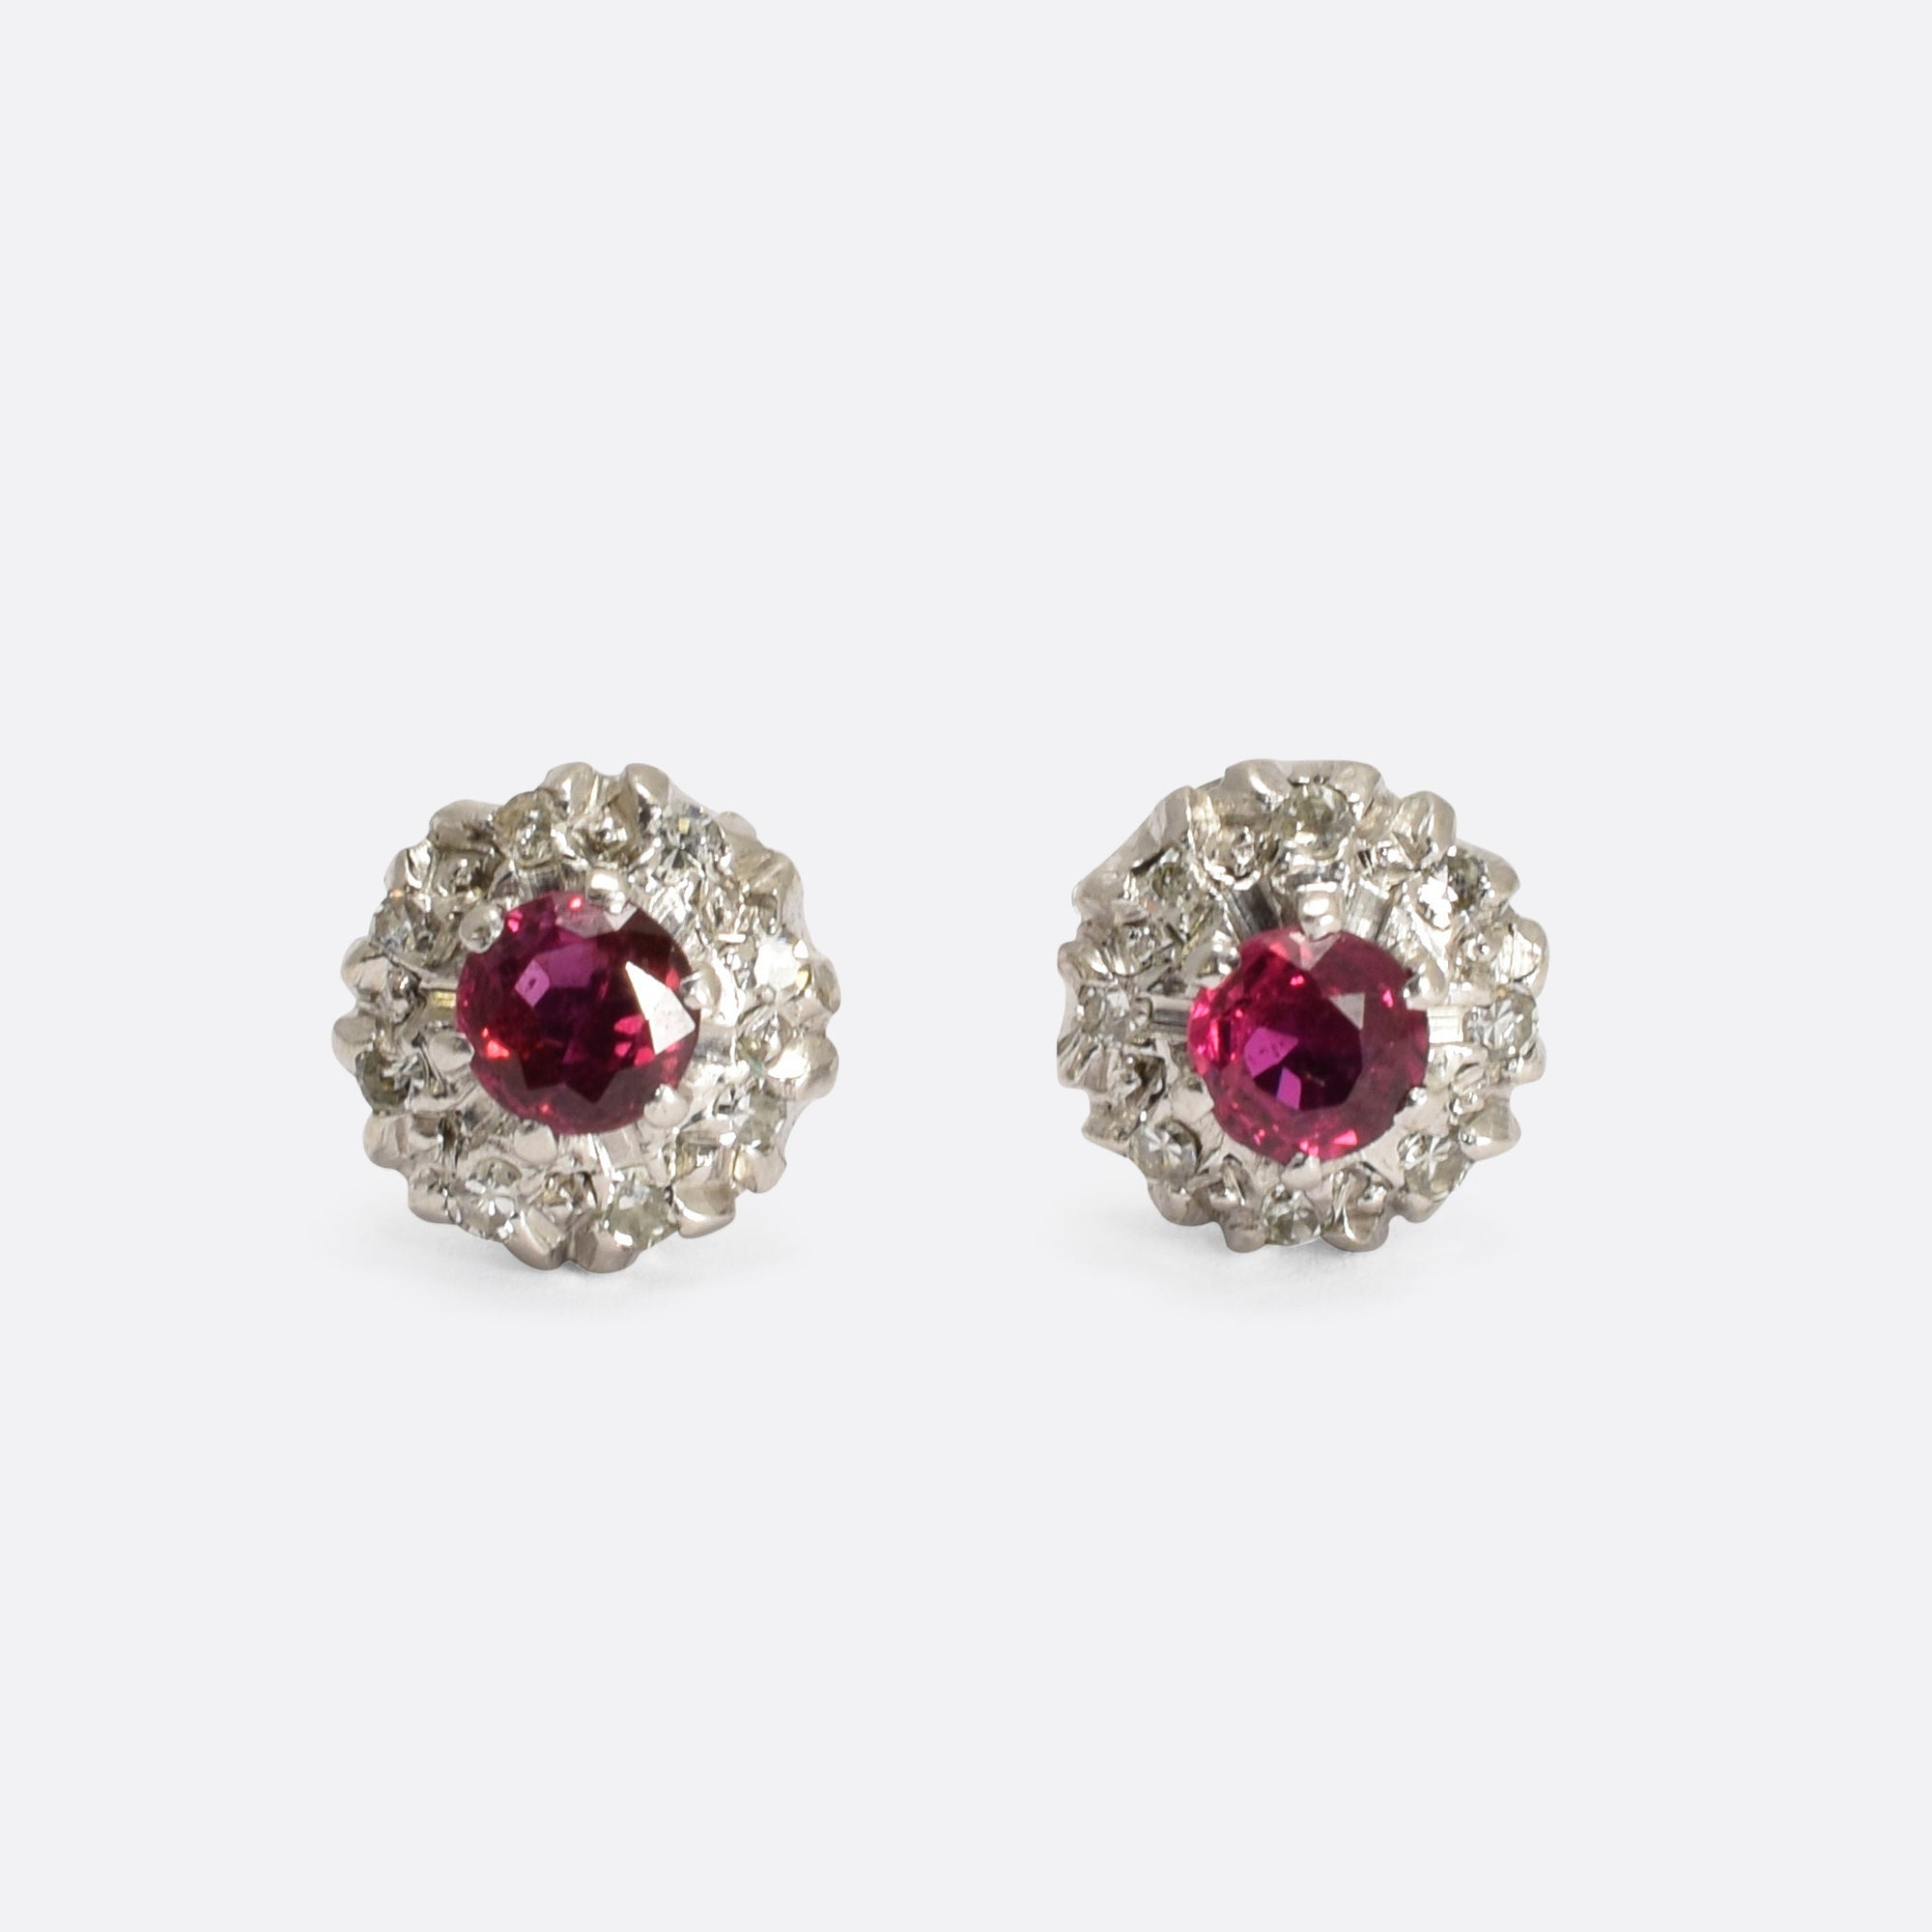 christies nyr diamond earrings jewels s online stud jewellery christie